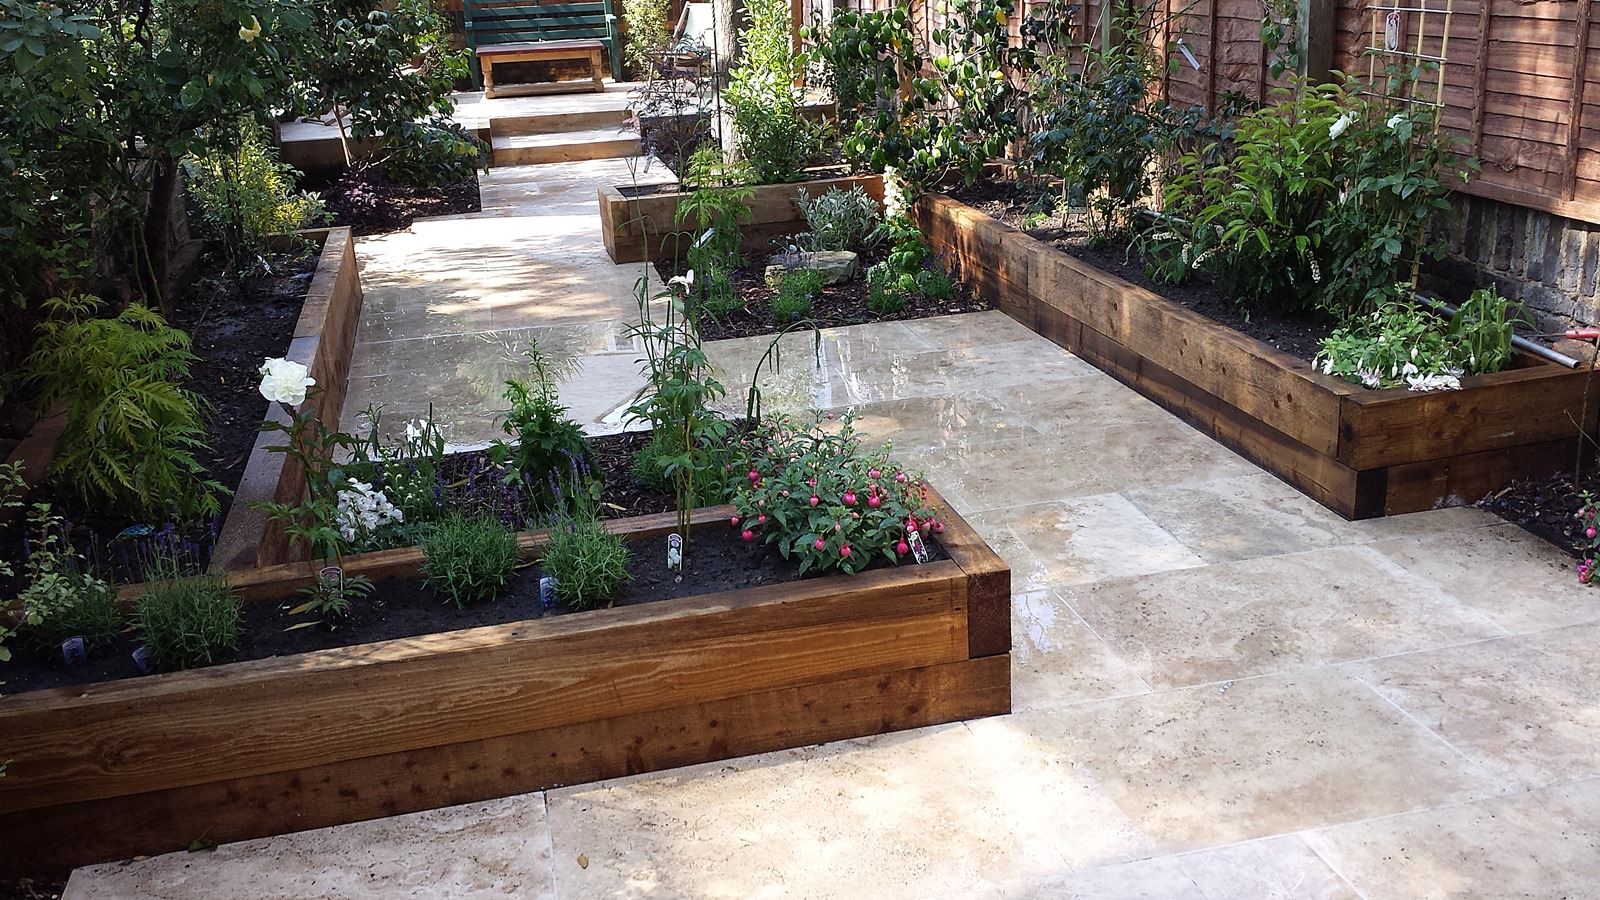 Travertine paving patio modern garden design landscaping for Paved garden designs ideas